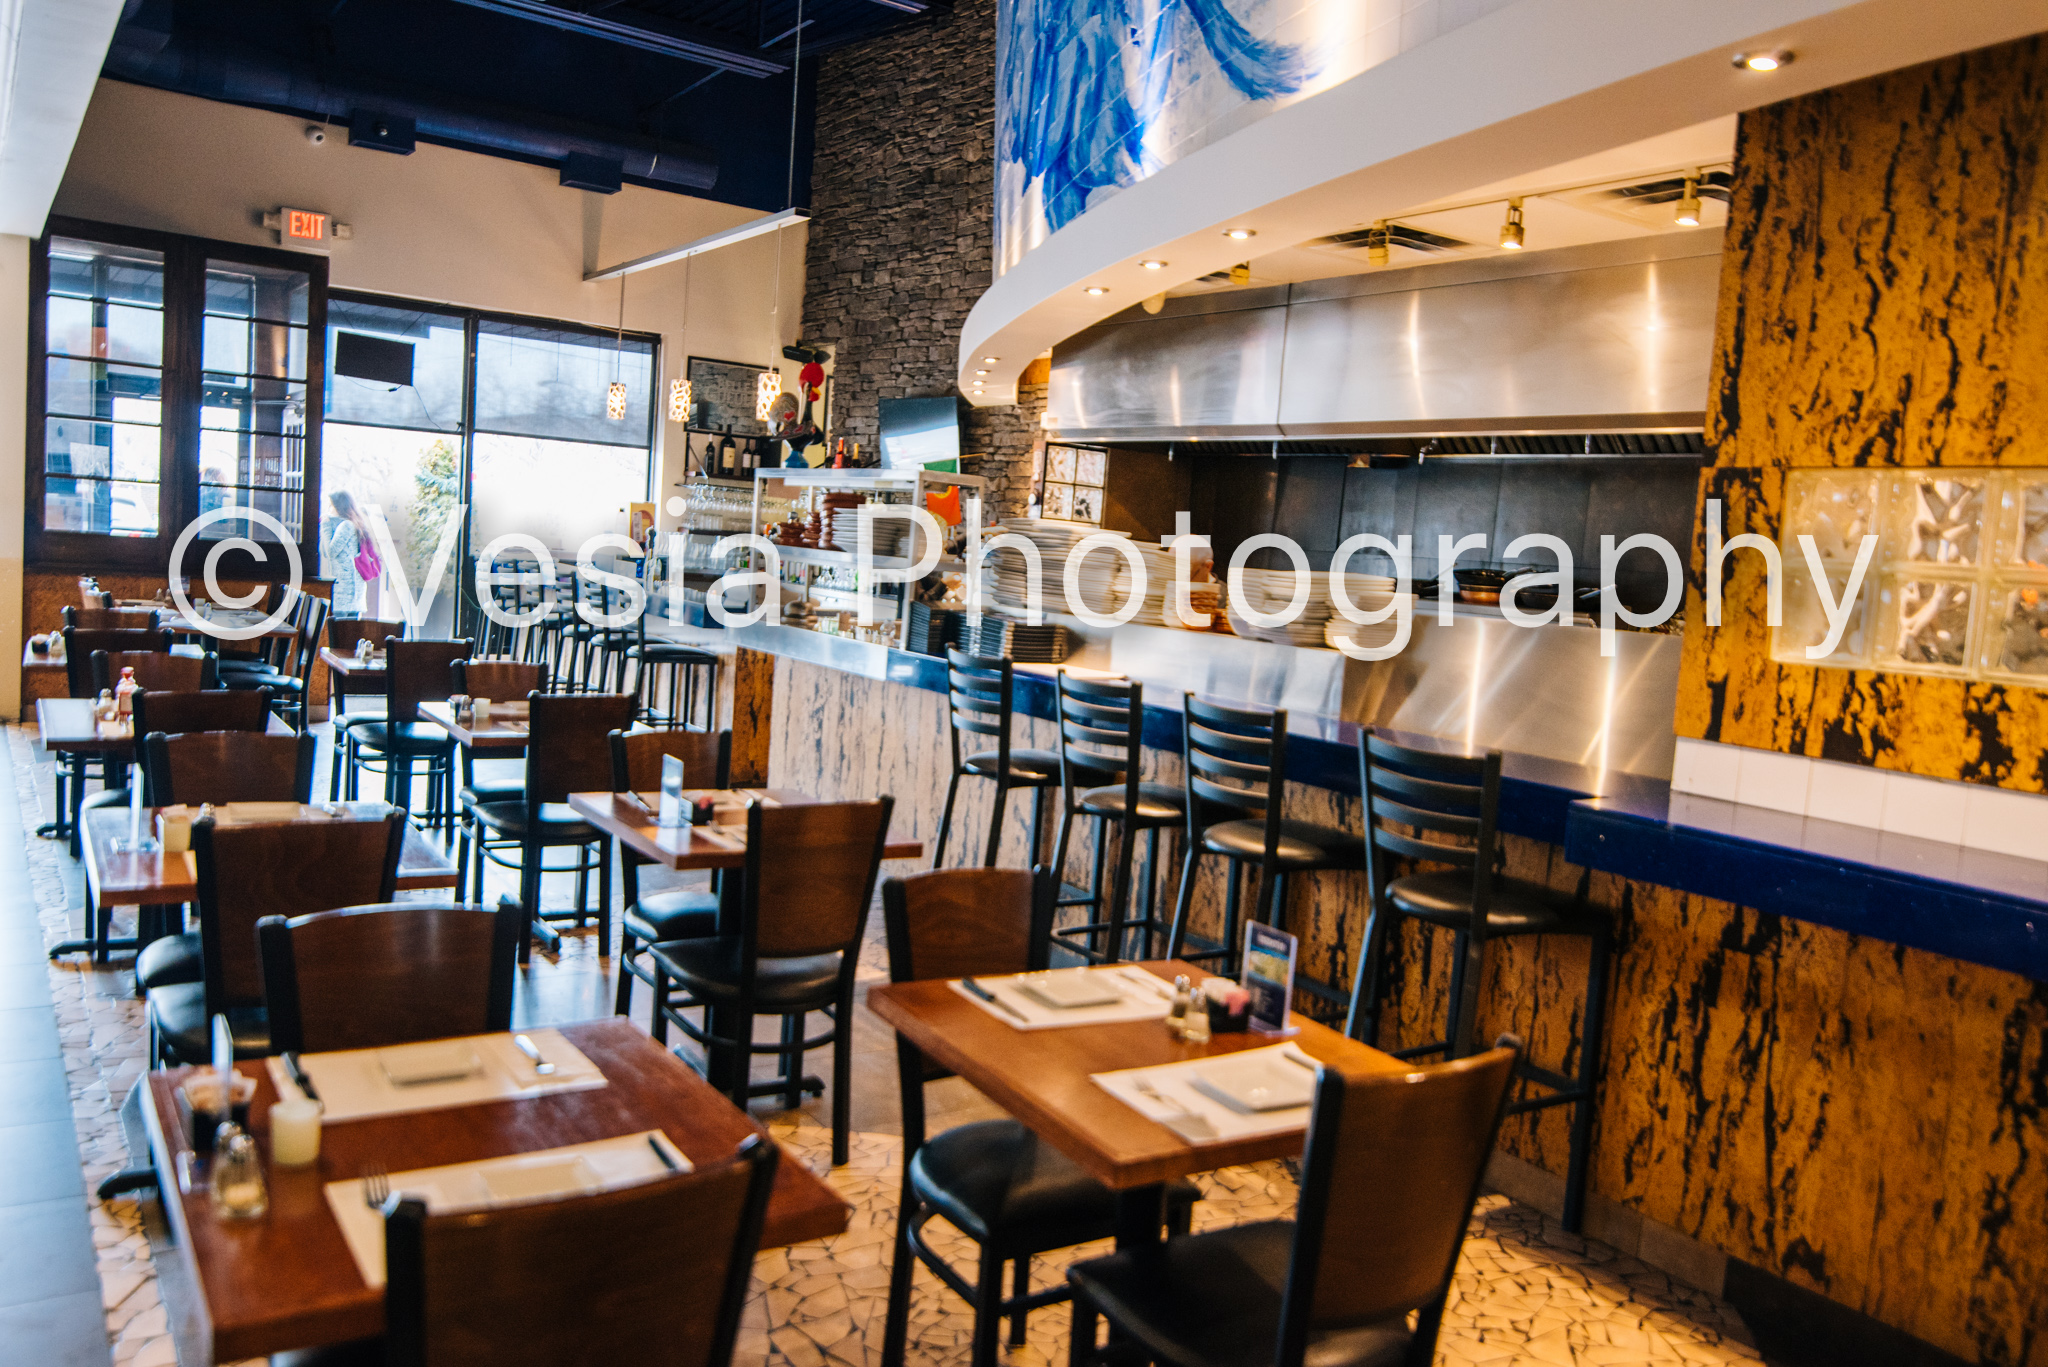 Impero_Grill_Proofs-7.jpg